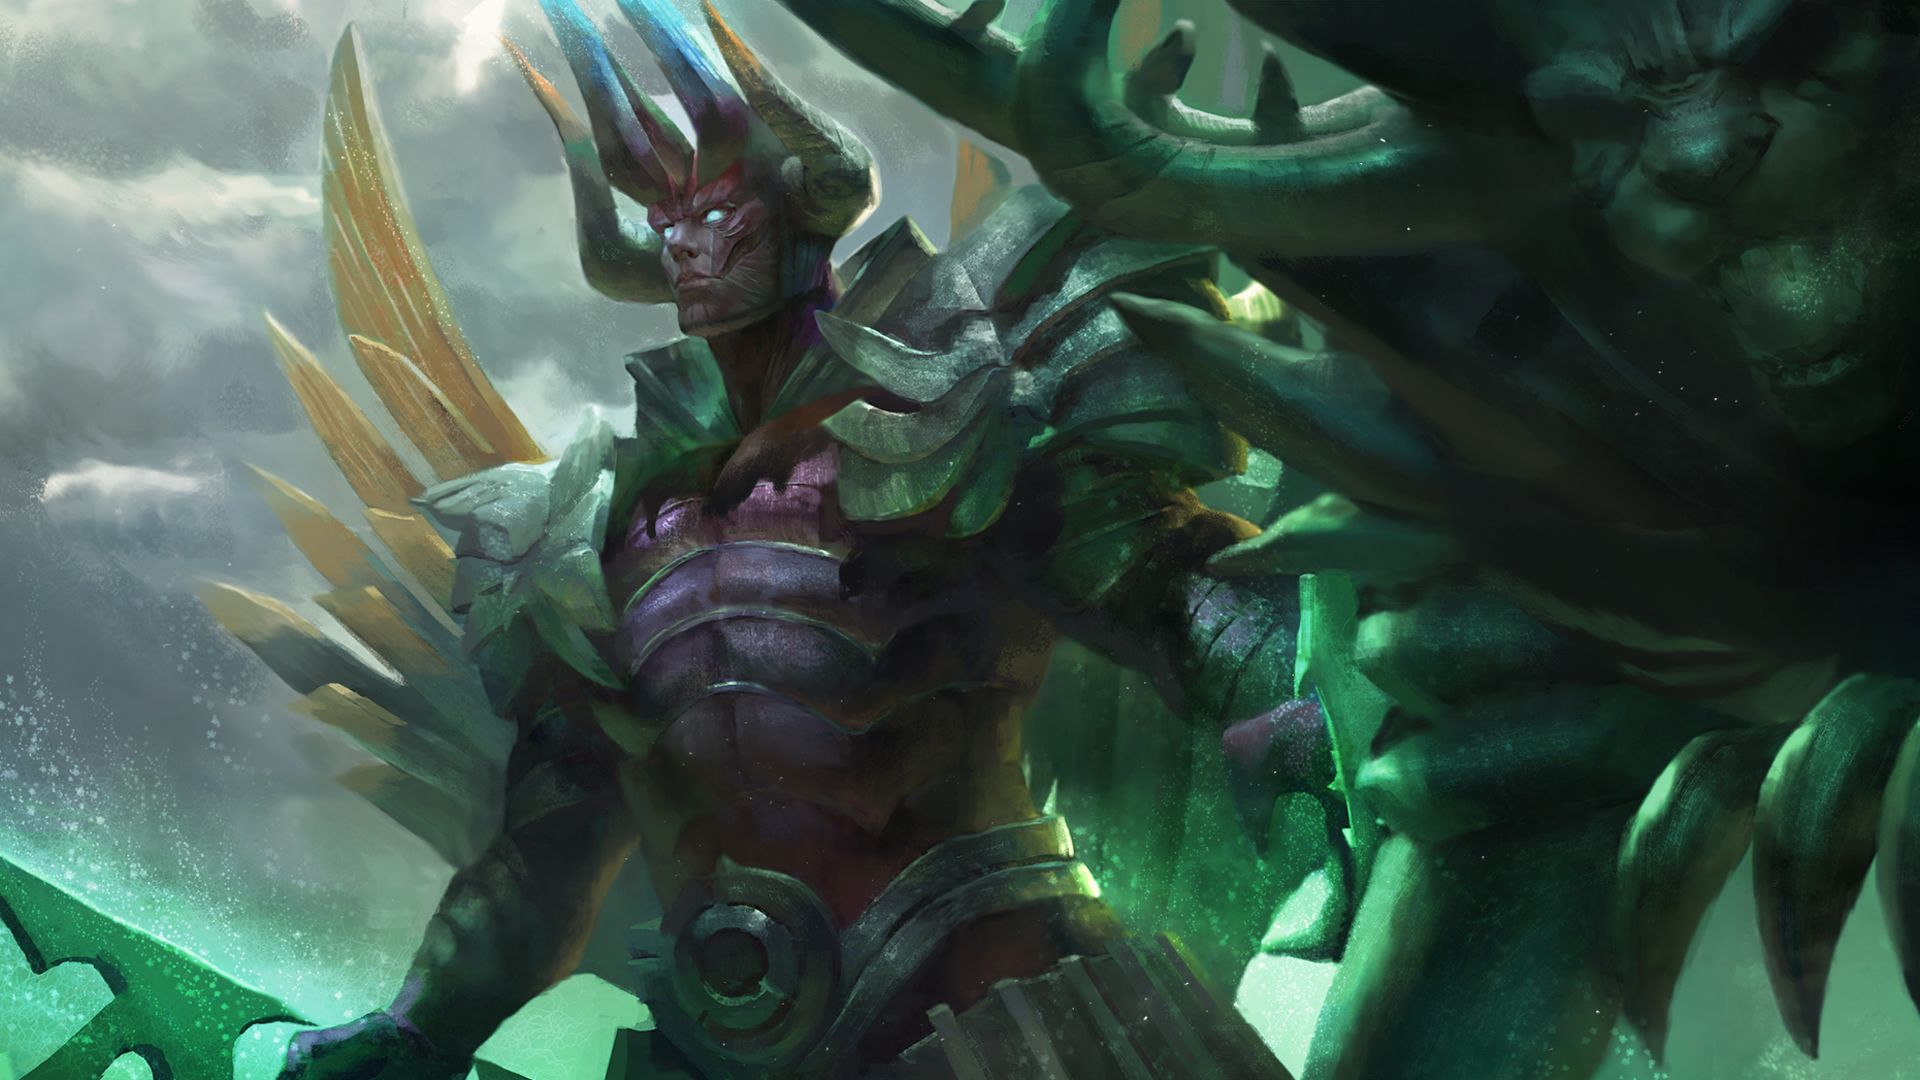 morphing | dota 2 | pinterest | widescreen wallpaper, wallpaper